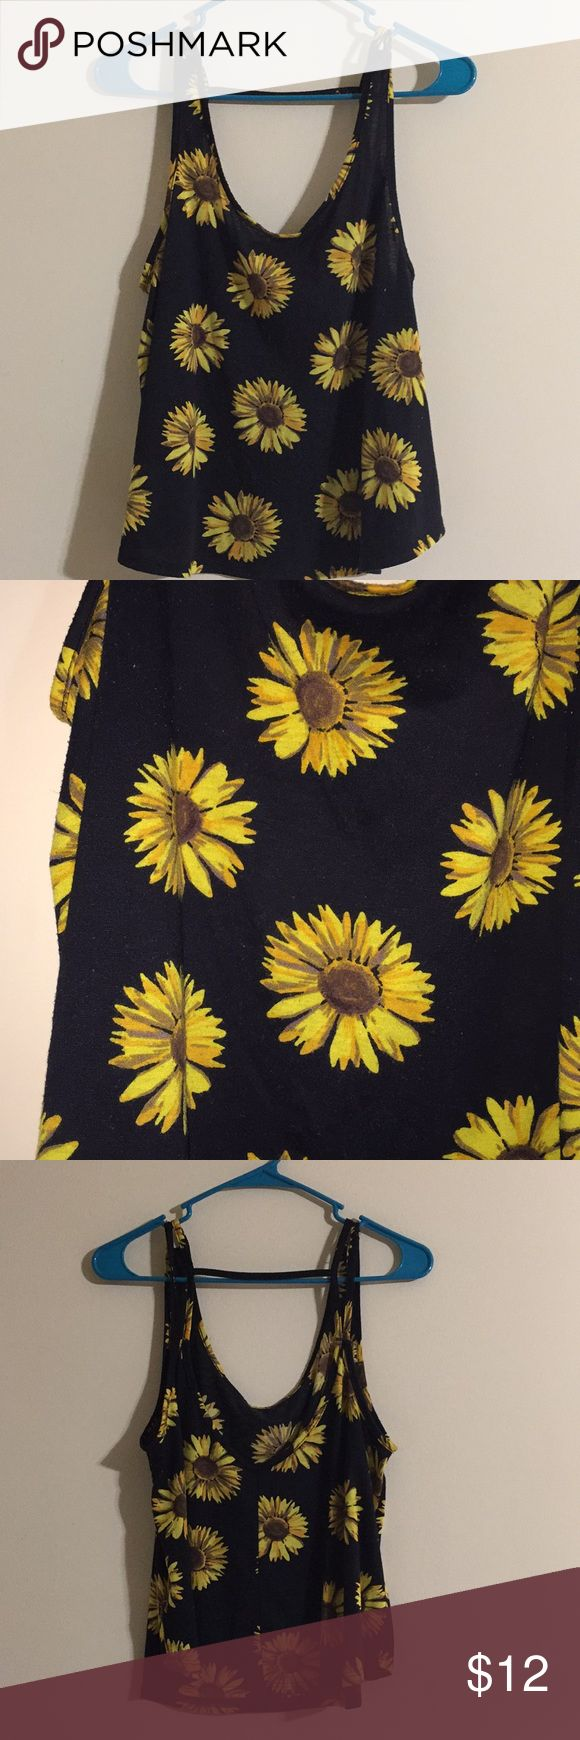 Sunflower Tank Top This Forever 21 tank top has a sunflower design and is perfect for a casual day or a night out! Worn only a few times. Forever 21 Tops Tank Tops